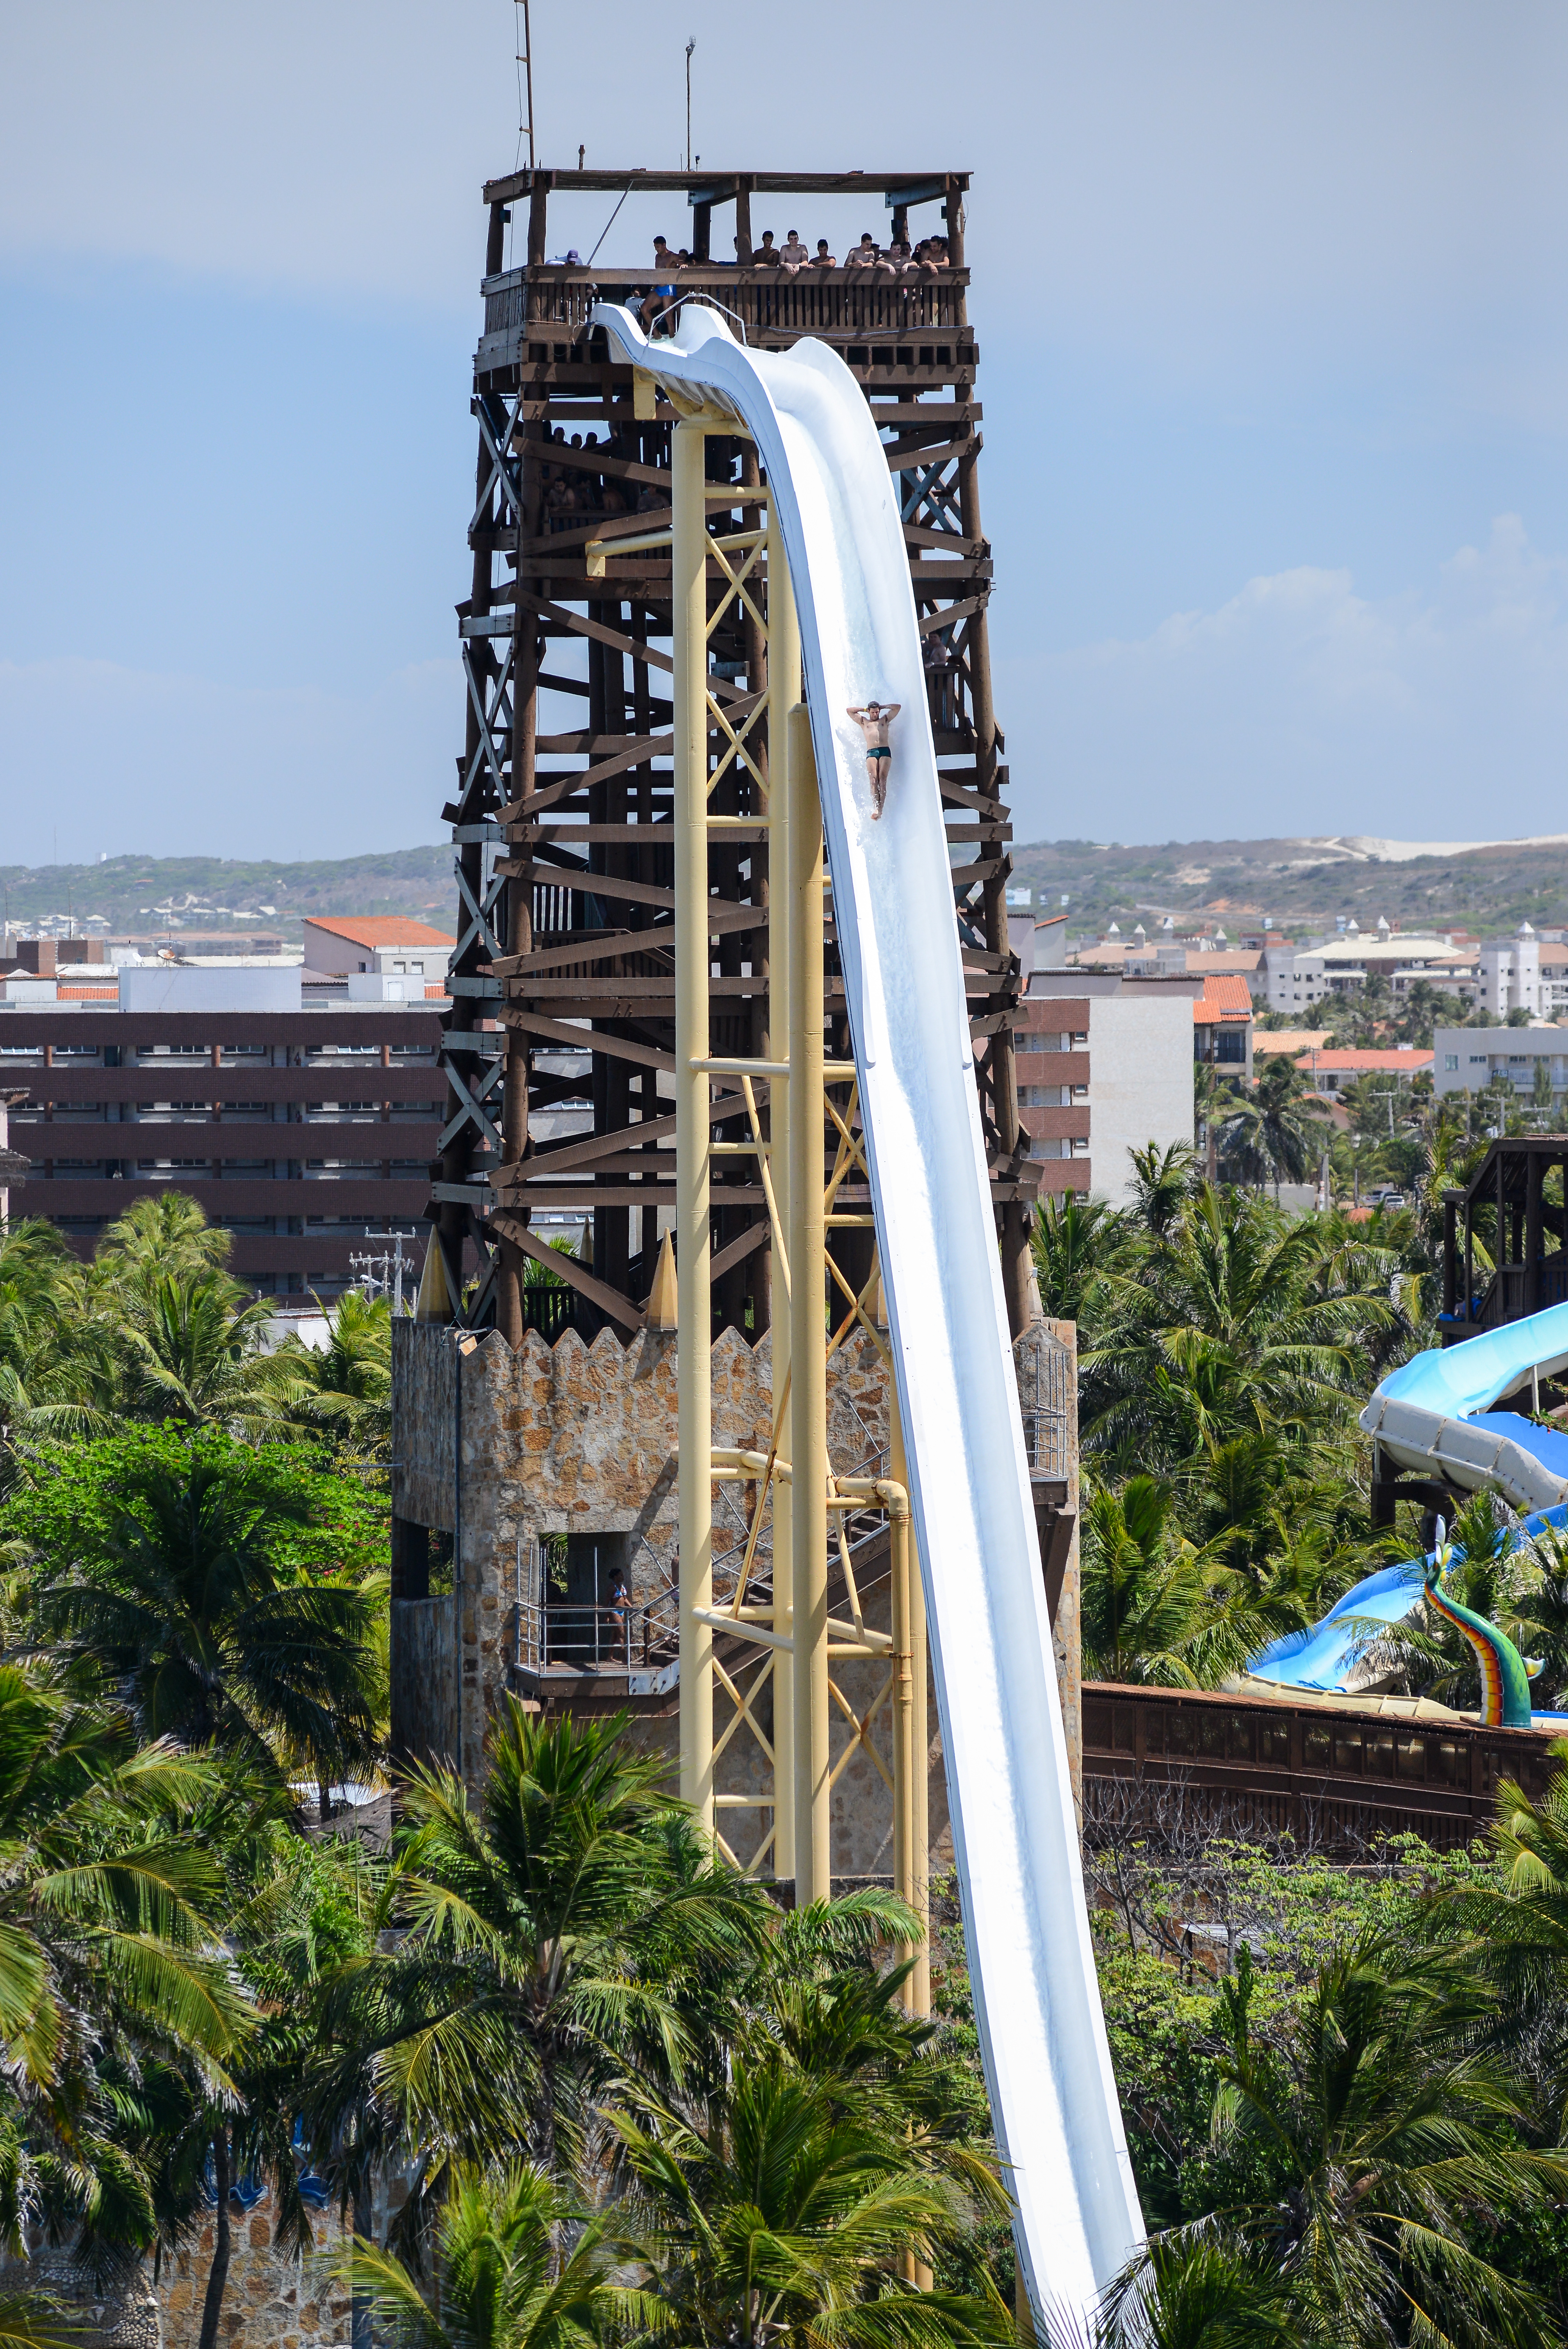 Beach Water Park Slides